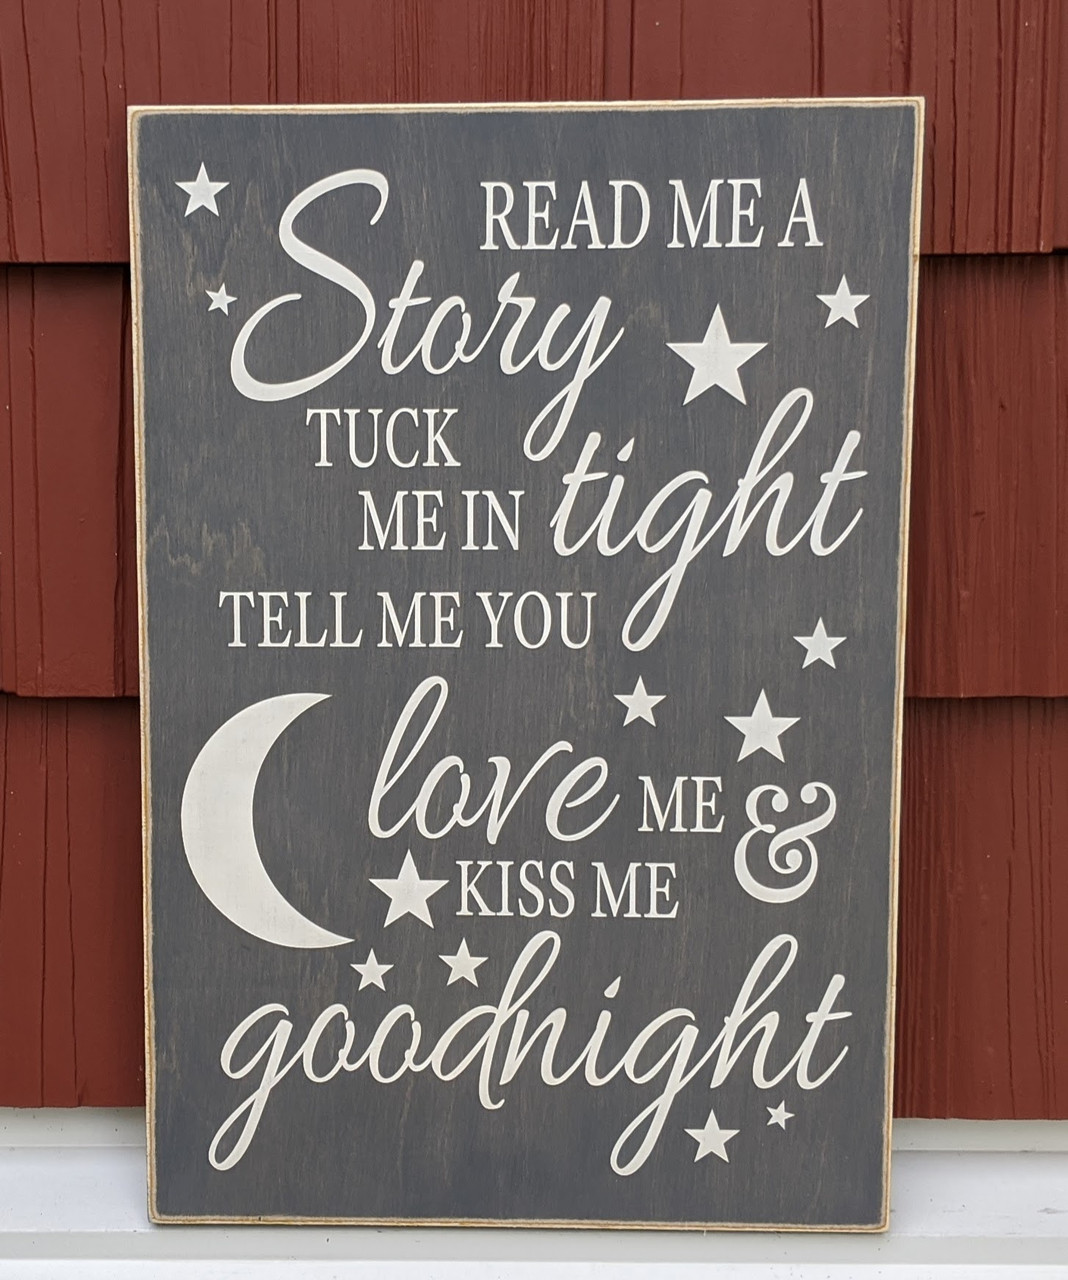 Read Me A Story Tuck Me In Tight, Tell Me You Love Me & Kiss Me Goodnight - Wood sign